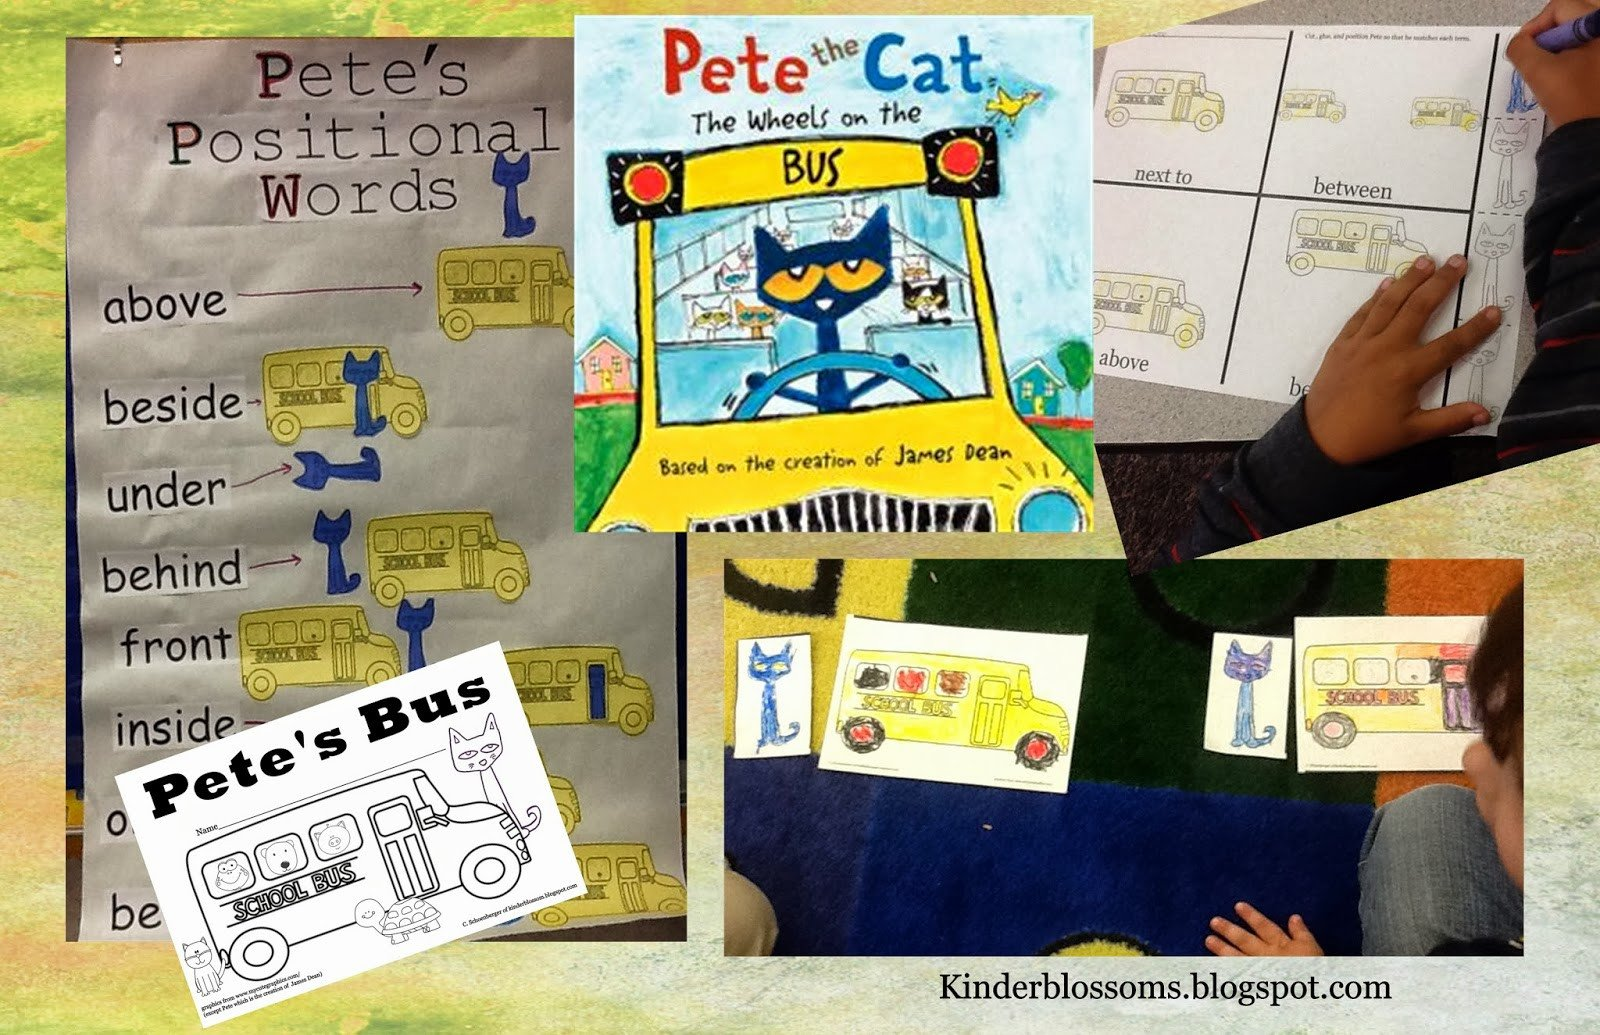 Positional Words Worksheets for Preschool Christina S Kinder Blossoms Positional Words with Pete the